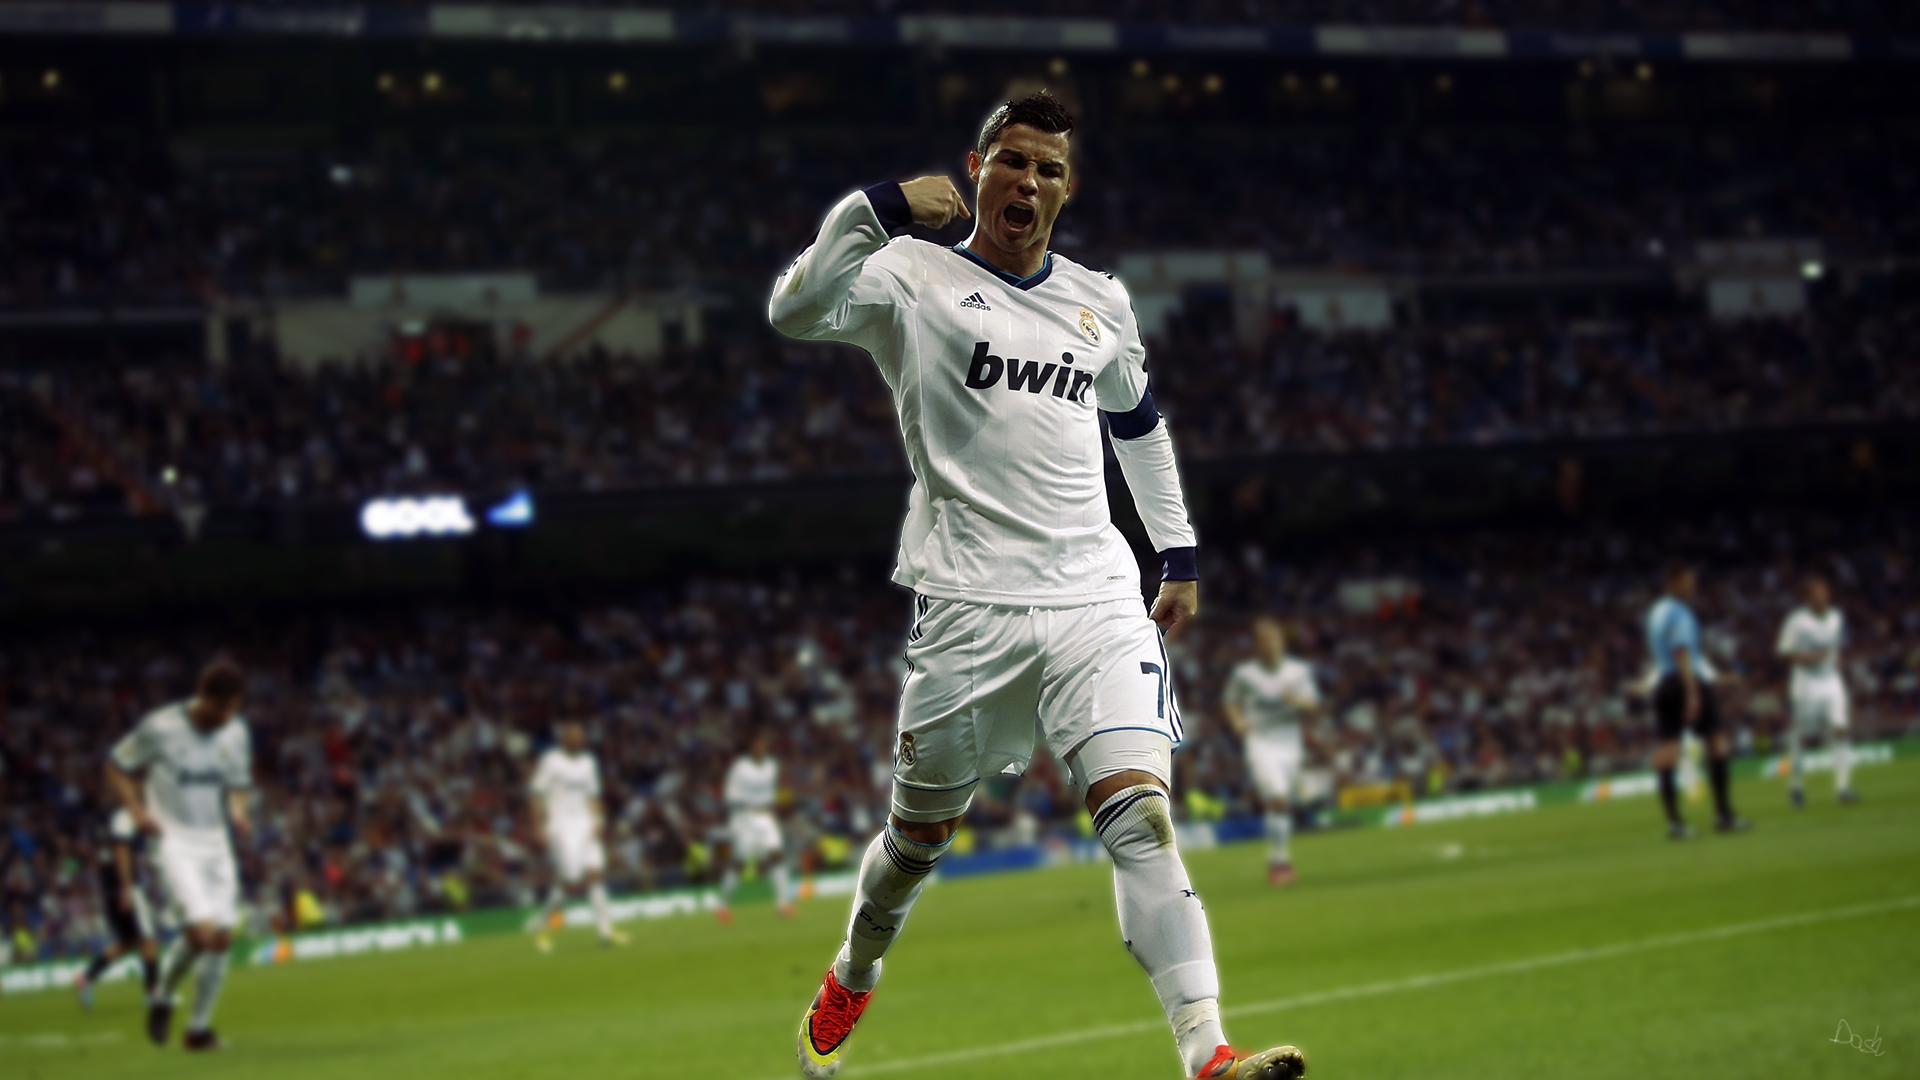 cristiano ronaldo full hd wallpaper and background image | 1920x1080